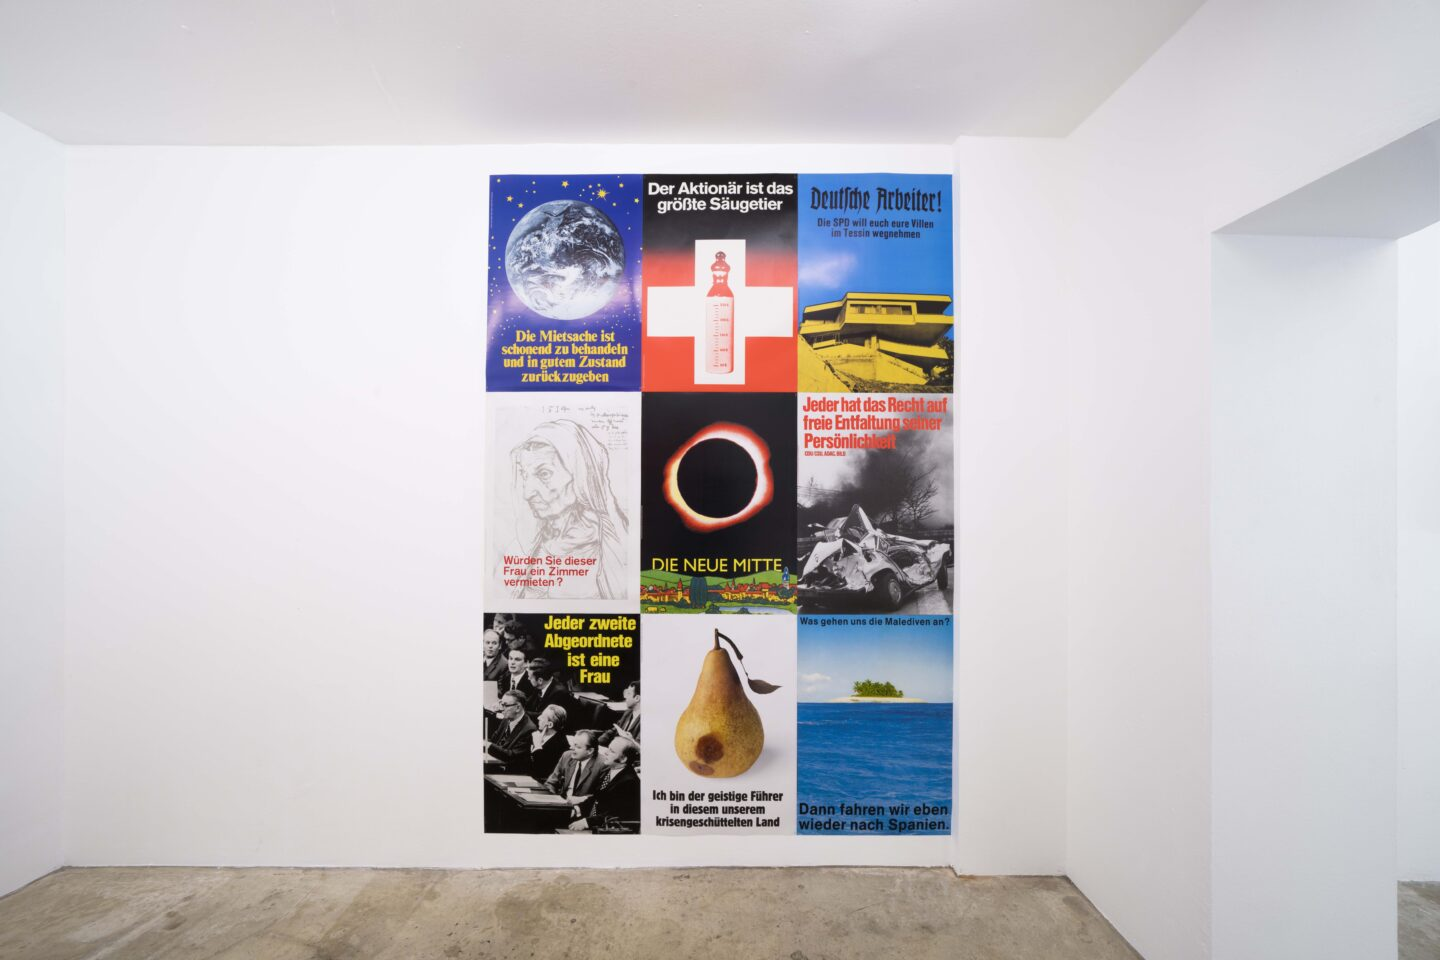 Exhibition View Groupshow «For; view on Klaus Staeck, Billboards, 1971-1999» at Milieu, Bern, 2020 / Photo: Claude Barrault / Courtesy: the artist and Milieu